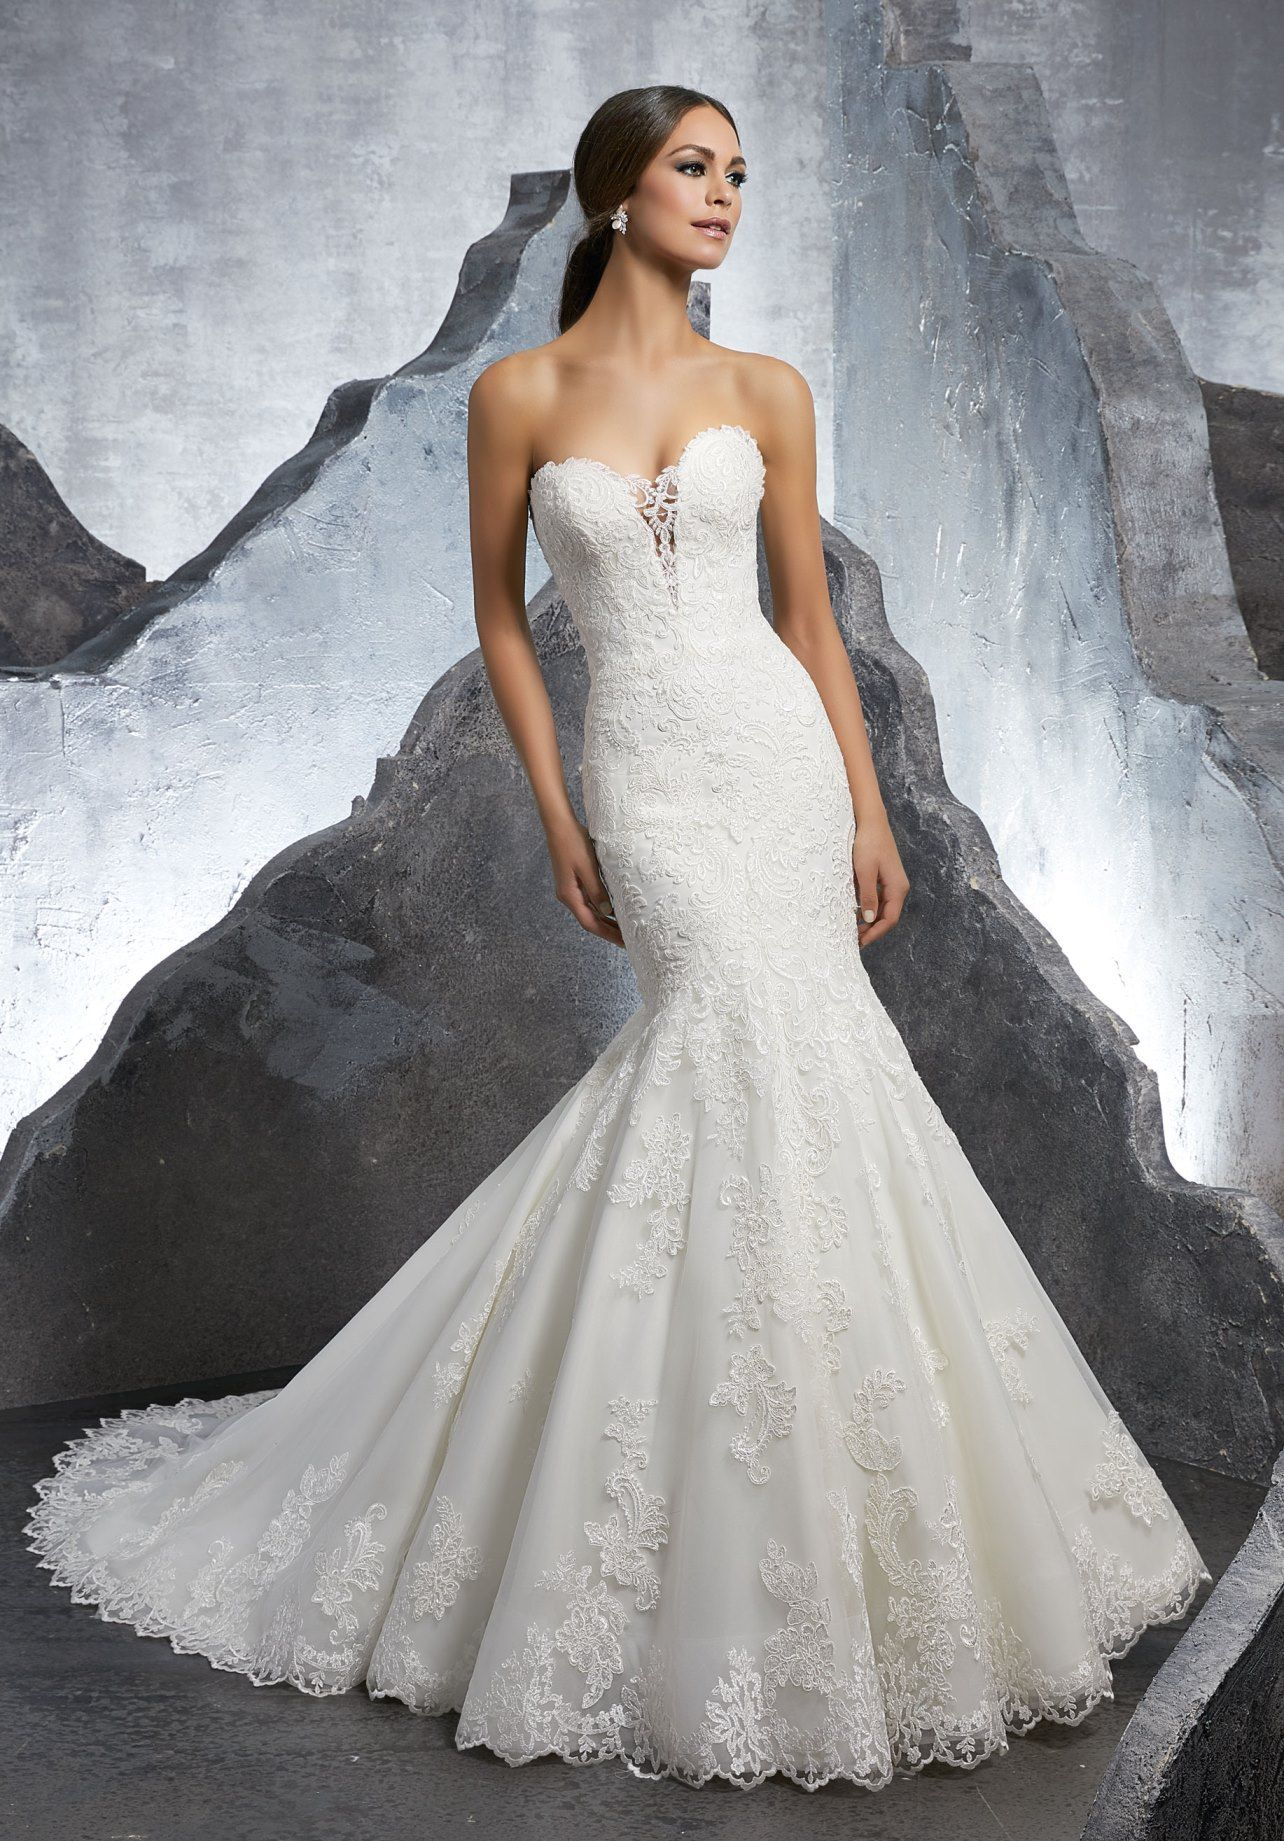 0fee1c202c8 Dress - Mori Lee Blue SPRING 2018 Collection  5607 - Kaitlyn ...